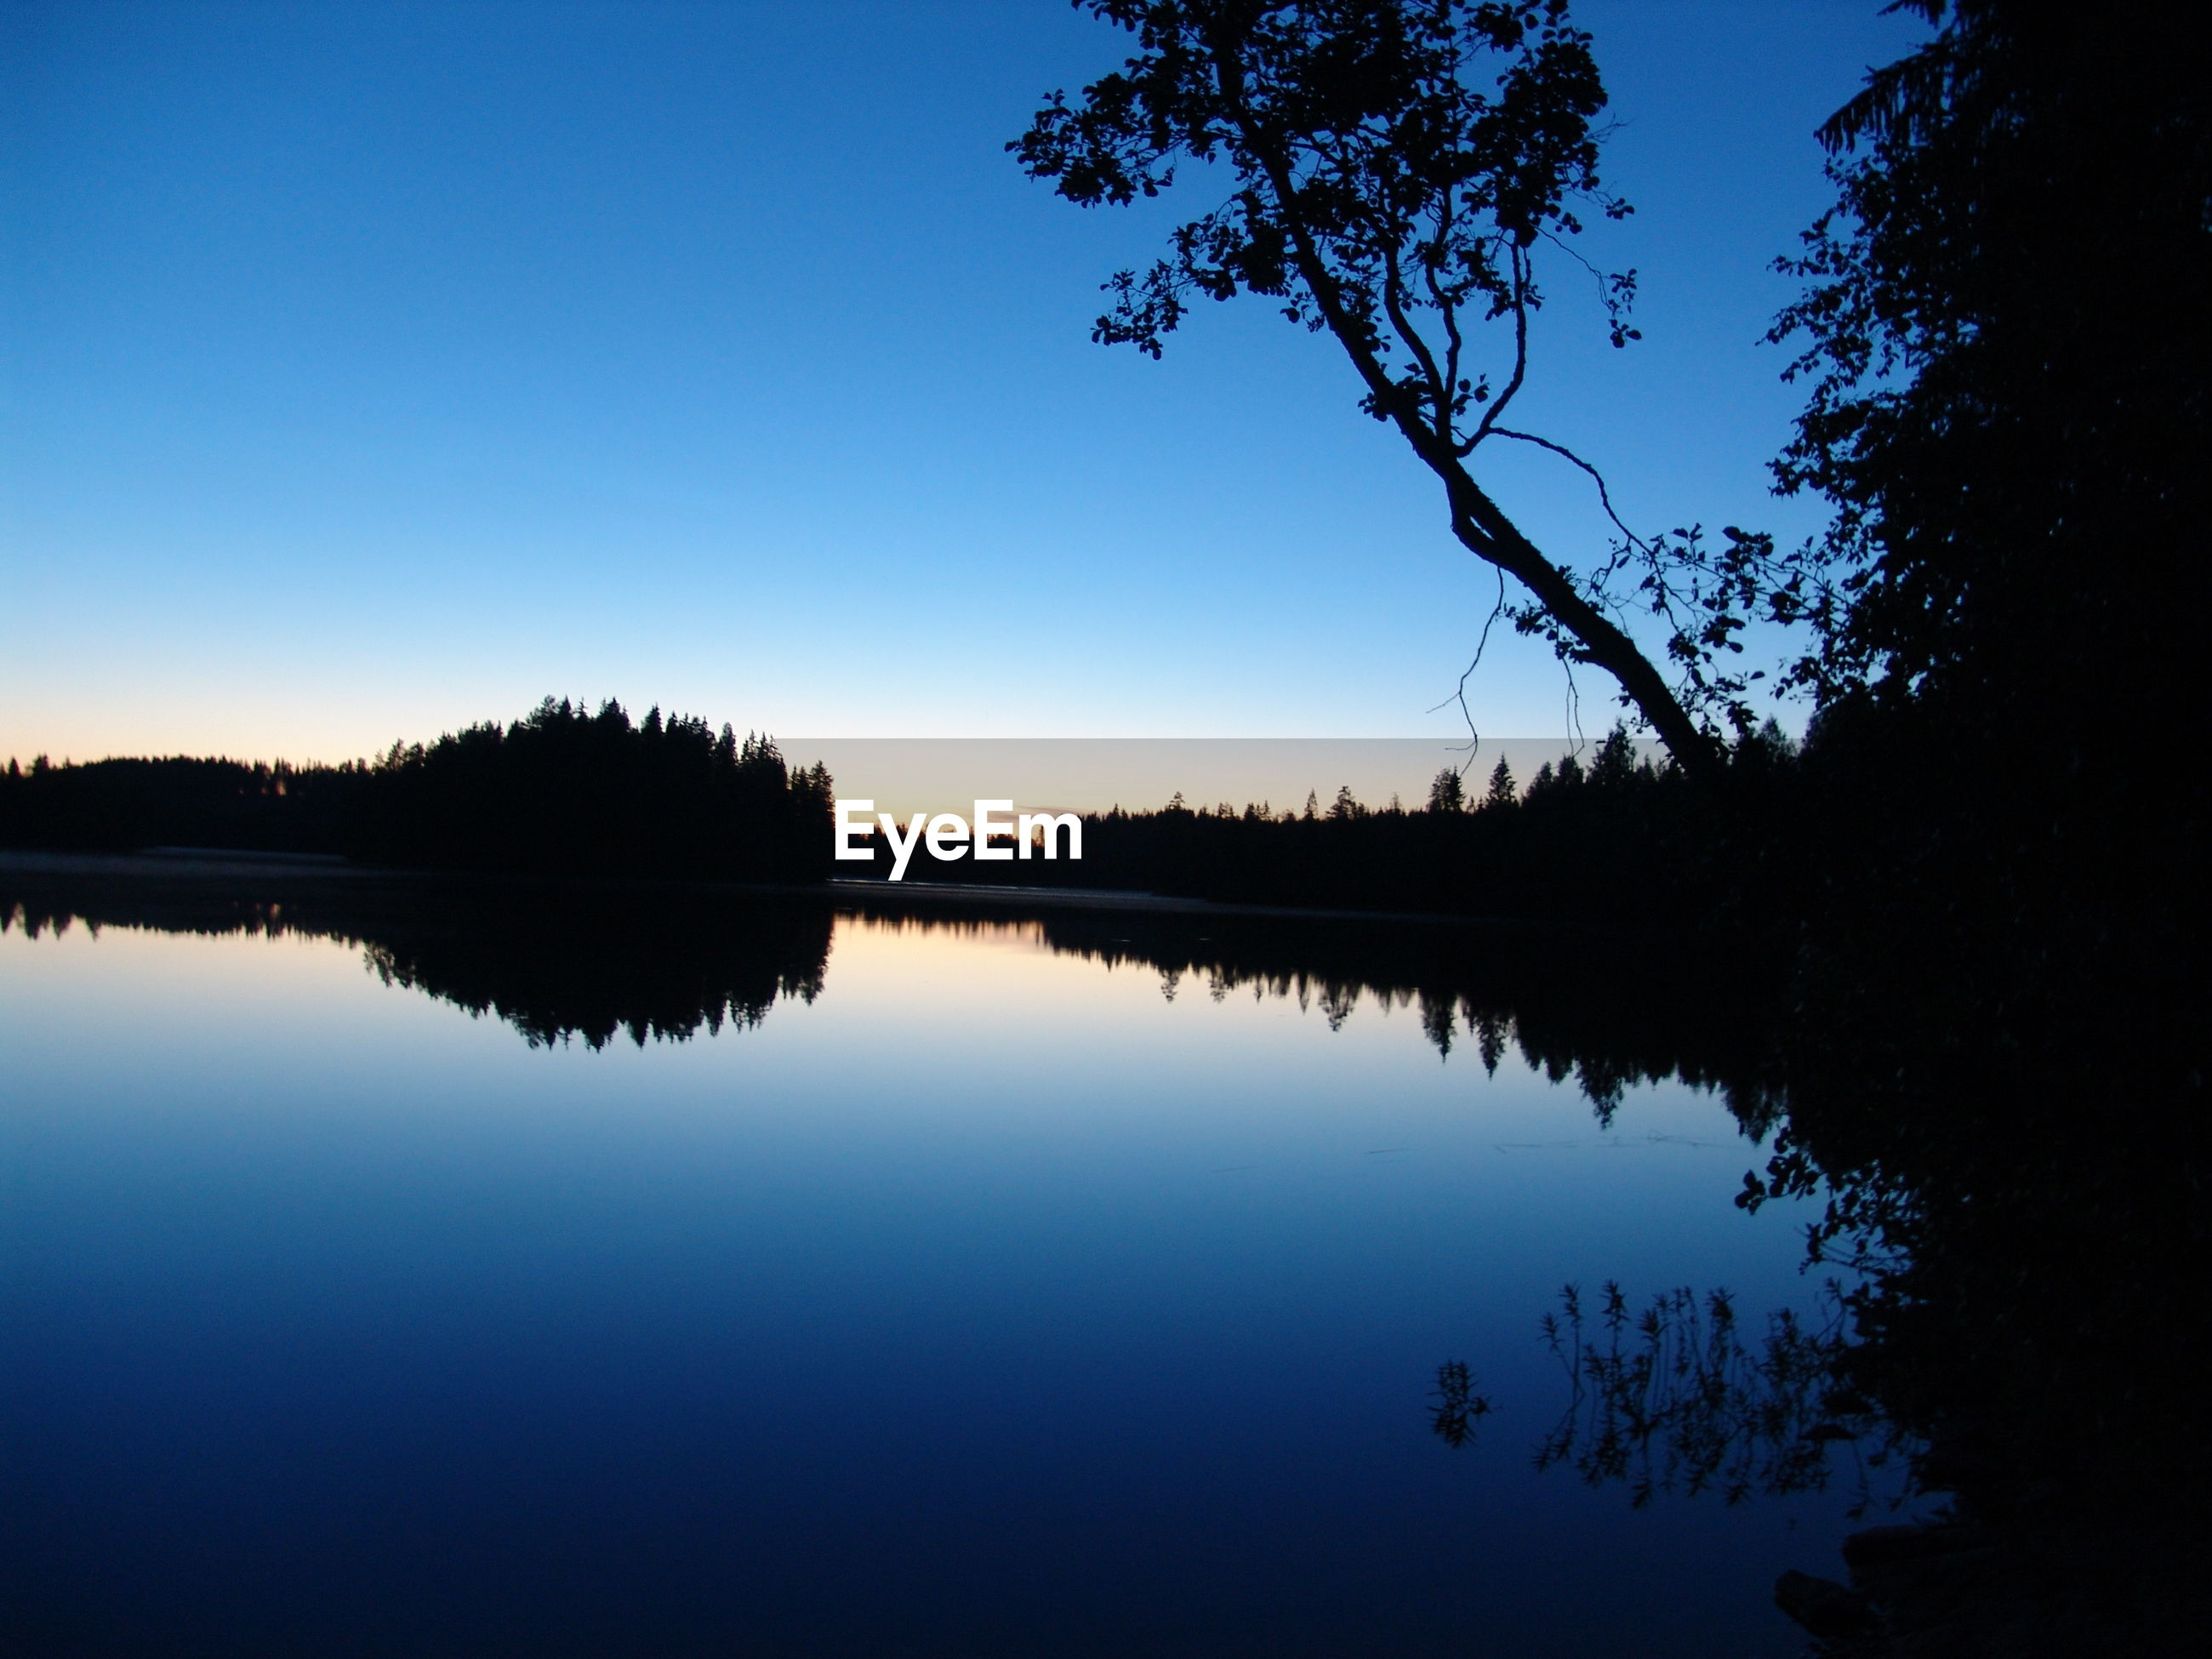 SCENIC VIEW OF CALM LAKE AGAINST CLEAR SKY AT DUSK